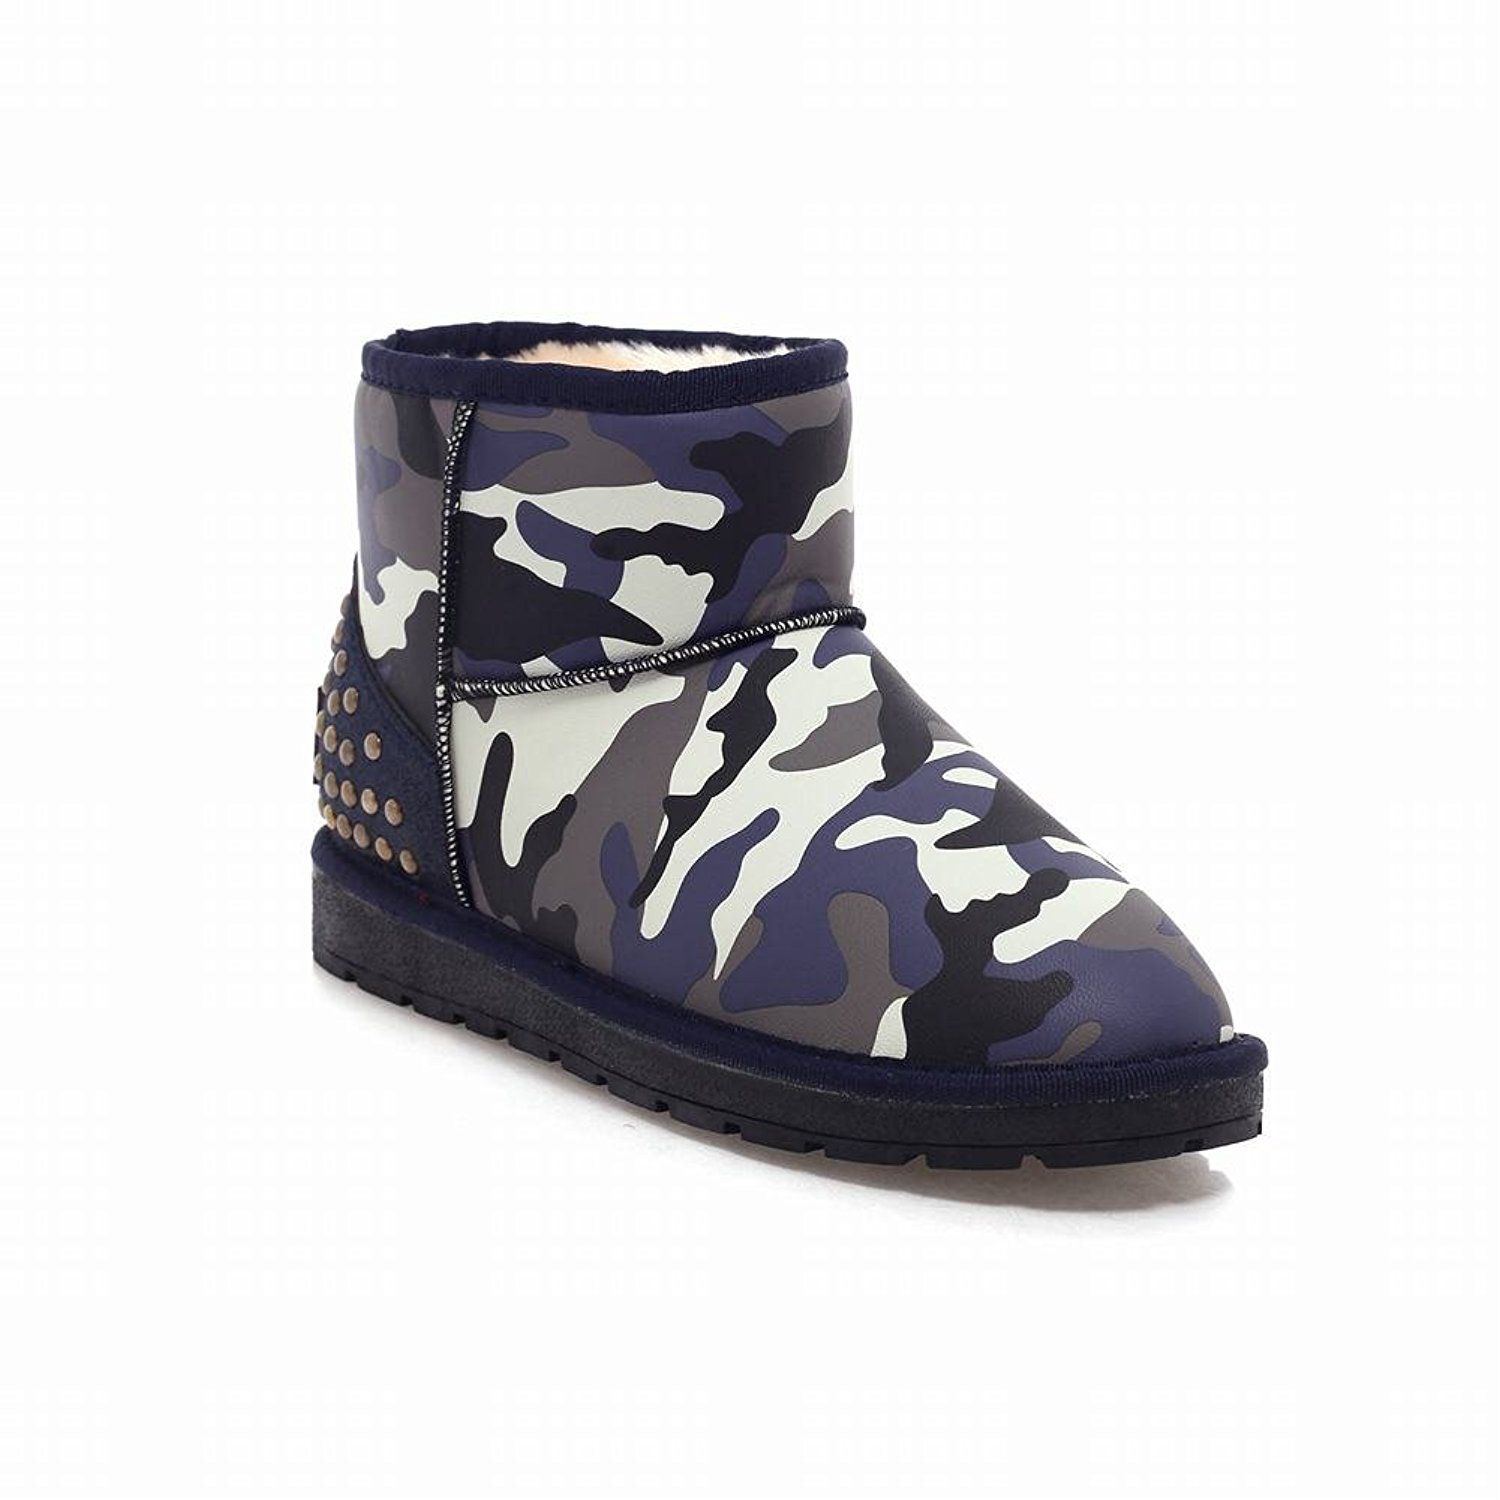 Show Shine Women's Chic Rivets Camouflage Platform Boots Ankle Boots Snow Boots -- You can get more details by clicking on the image.